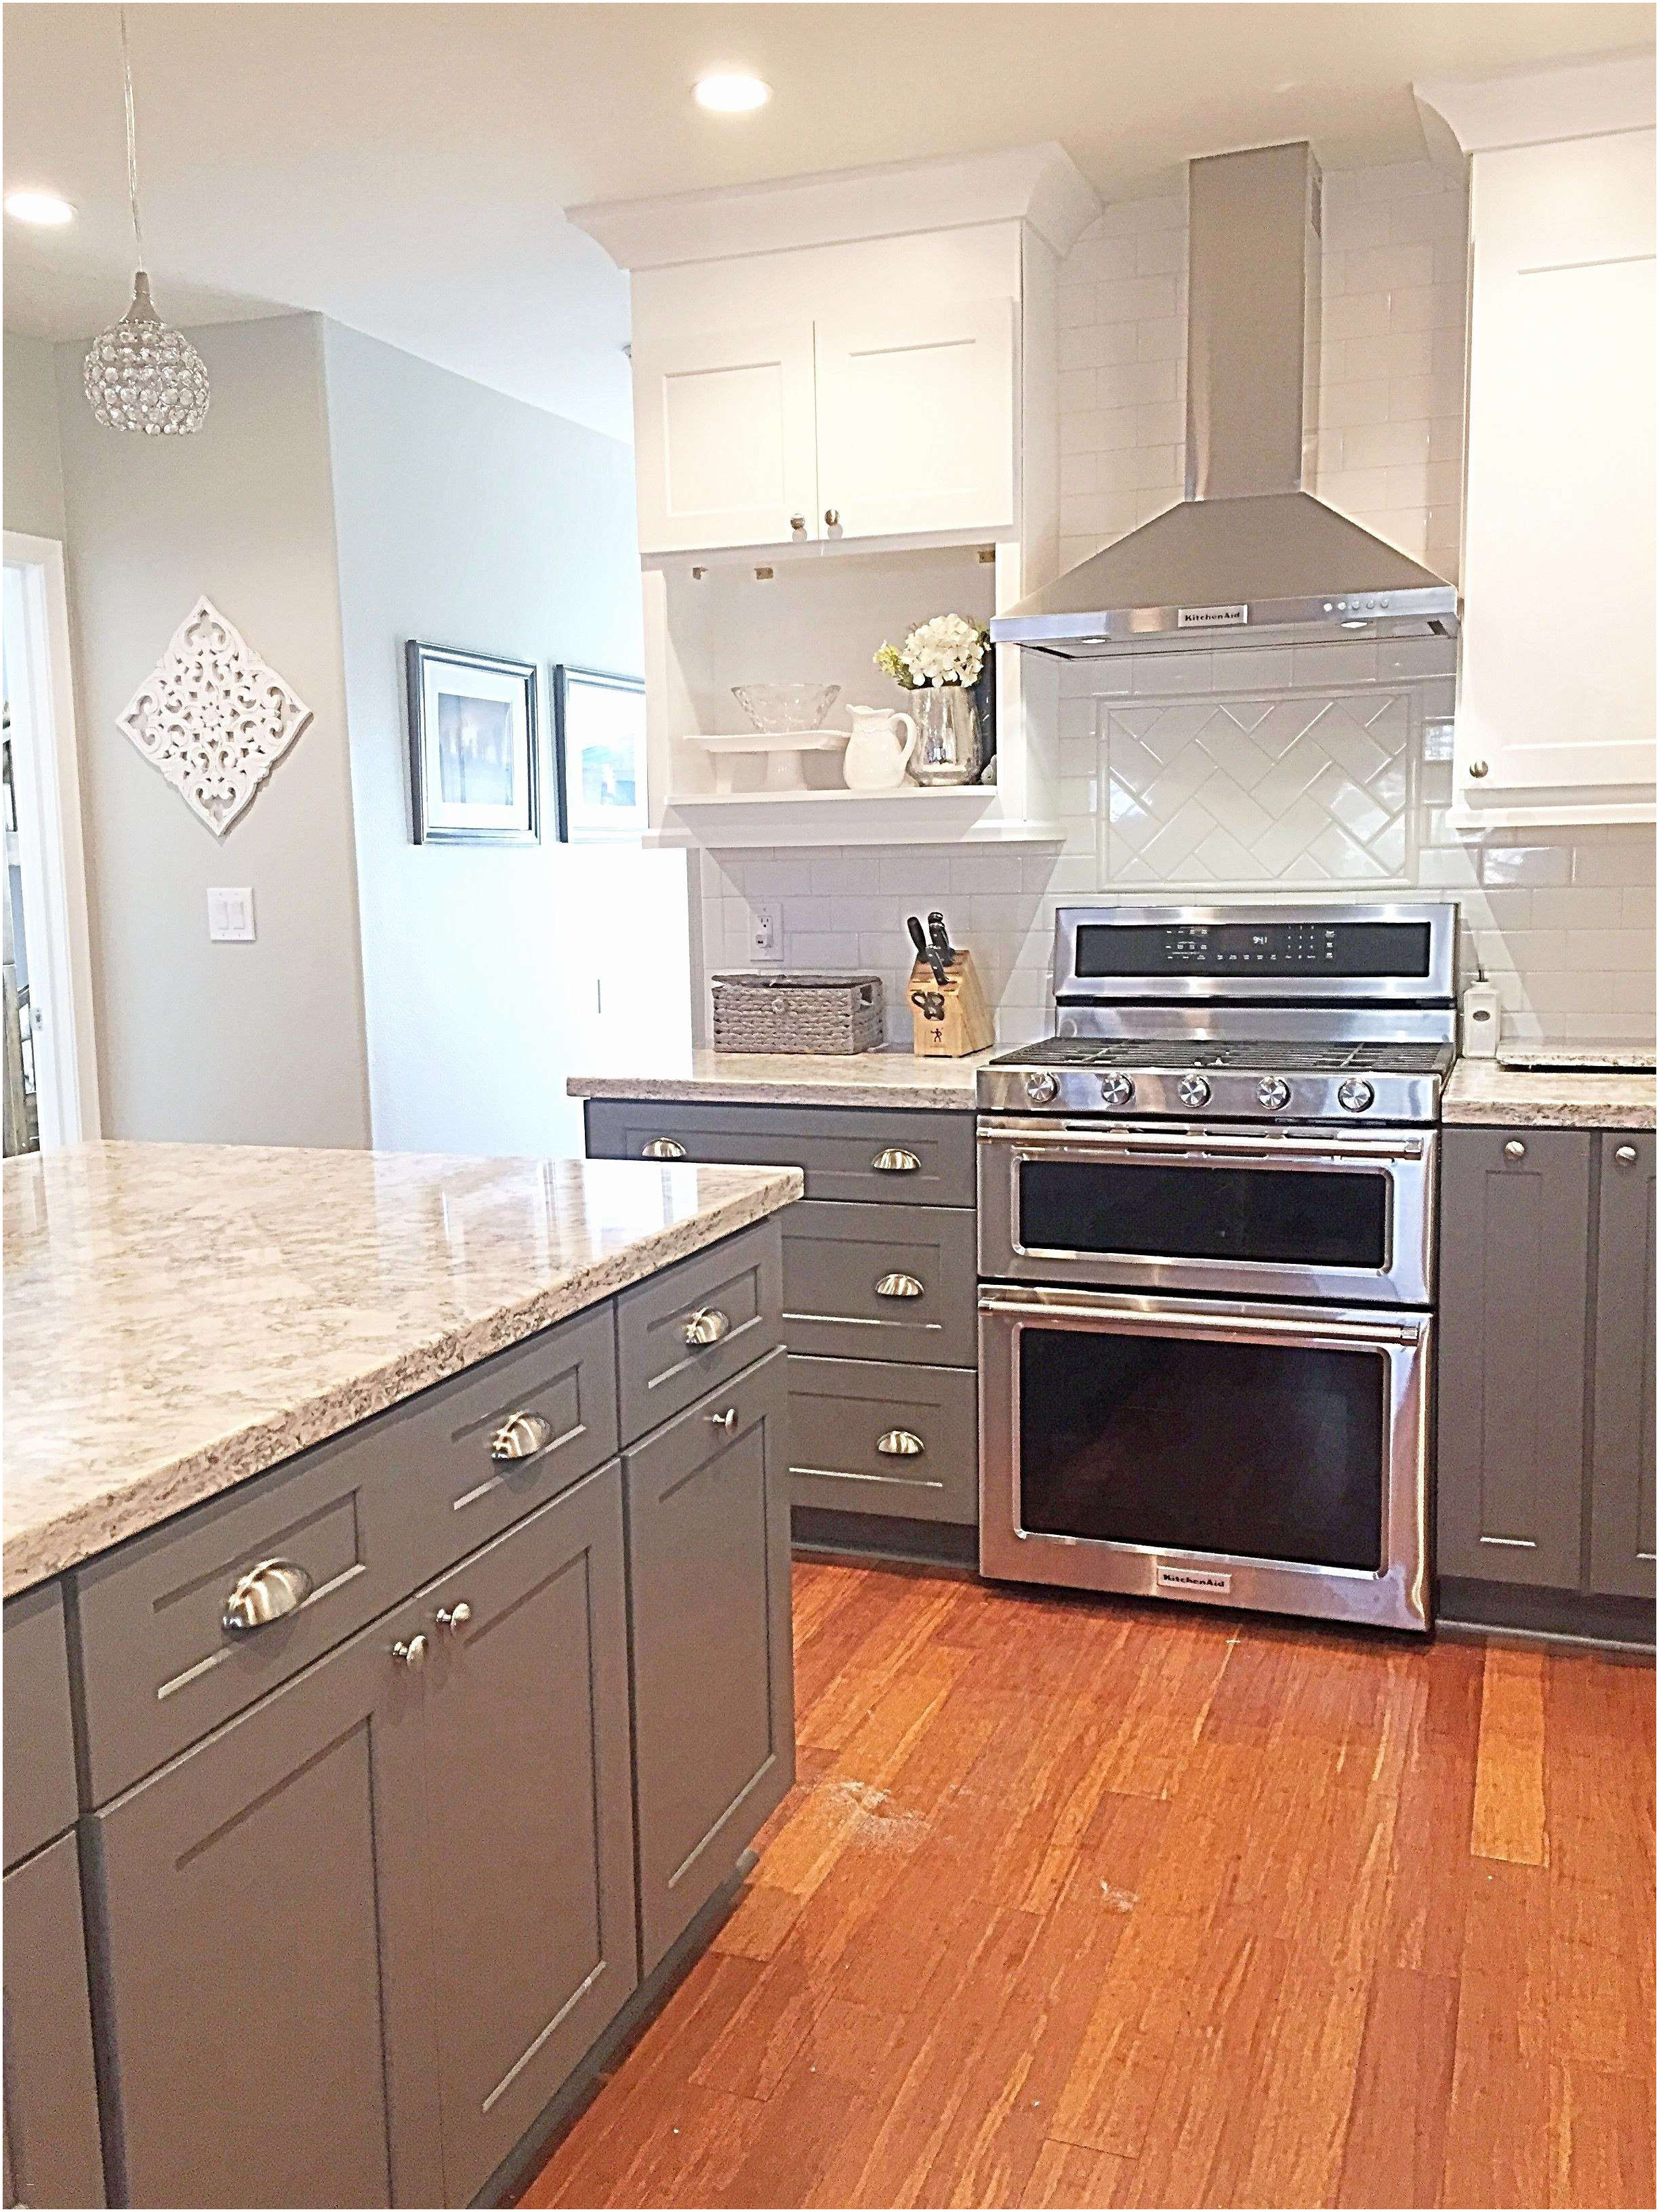 hardwood floor layout software of kitchen layout and design software awesome simple kitchen floor throughout kitchen layout and design software fresh kitchen remodel program of kitchen layout and design software awesome